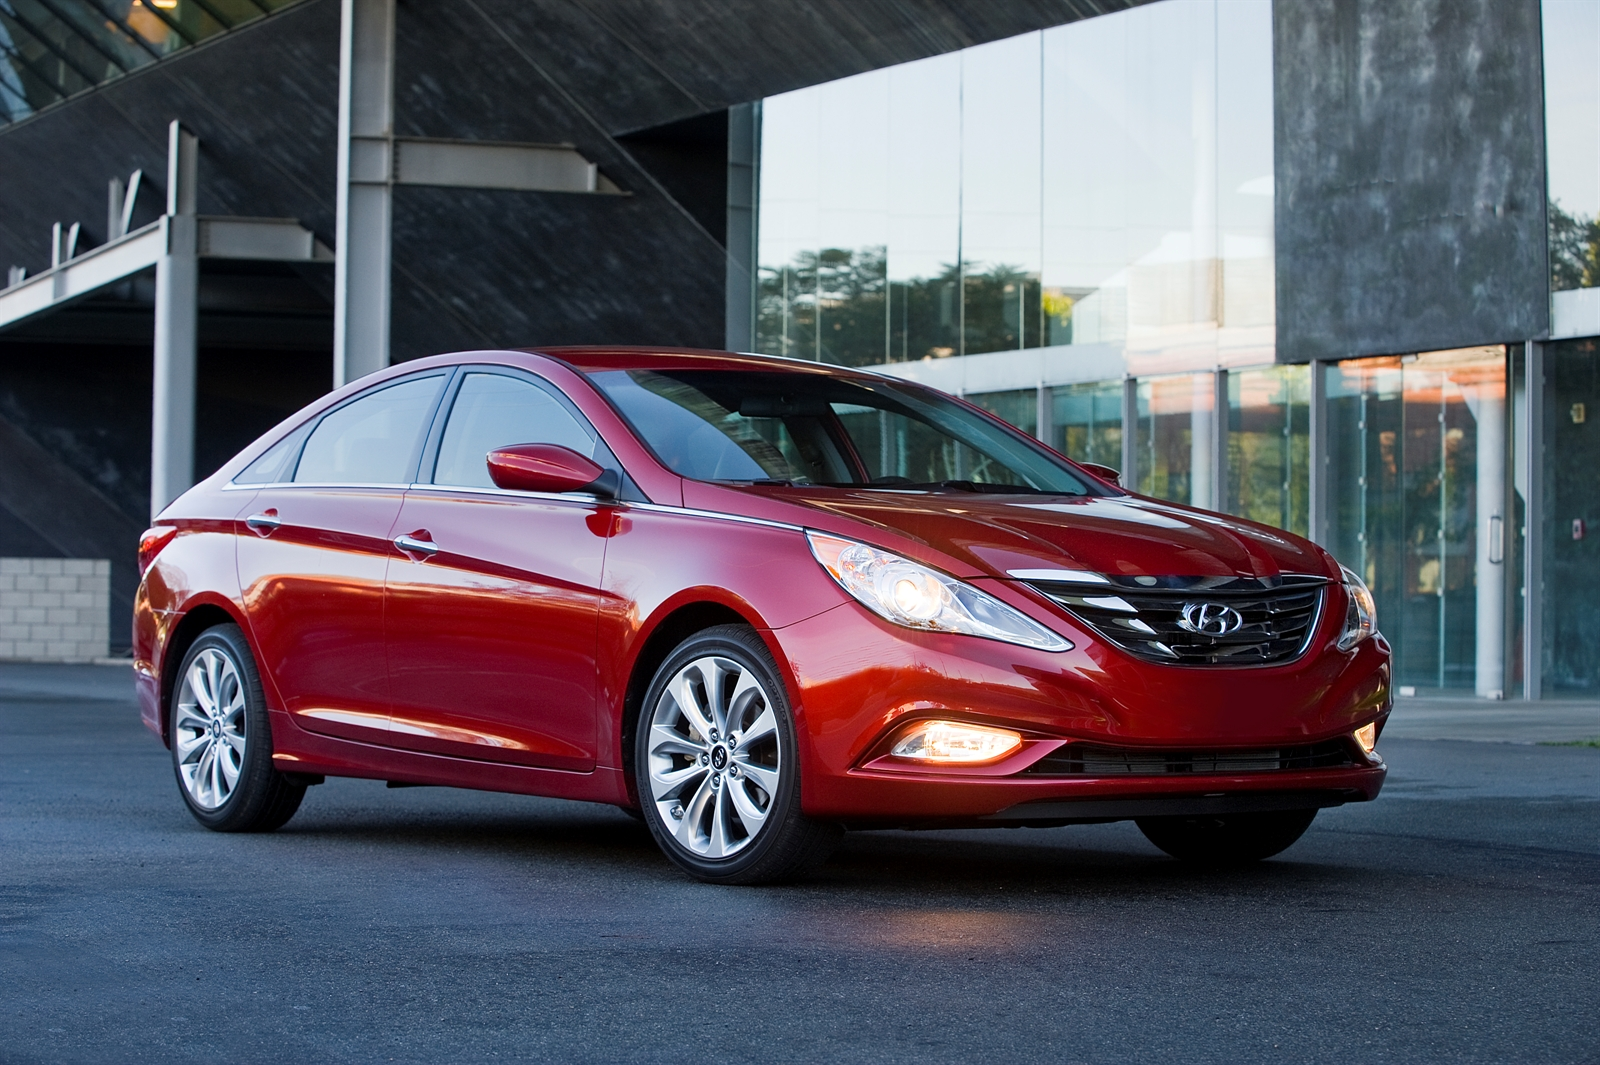 2013 hyundai sonata loses manual gearbox gains features rh thecarconnection com Best Manual Cars Under 15K best manual cars 2013